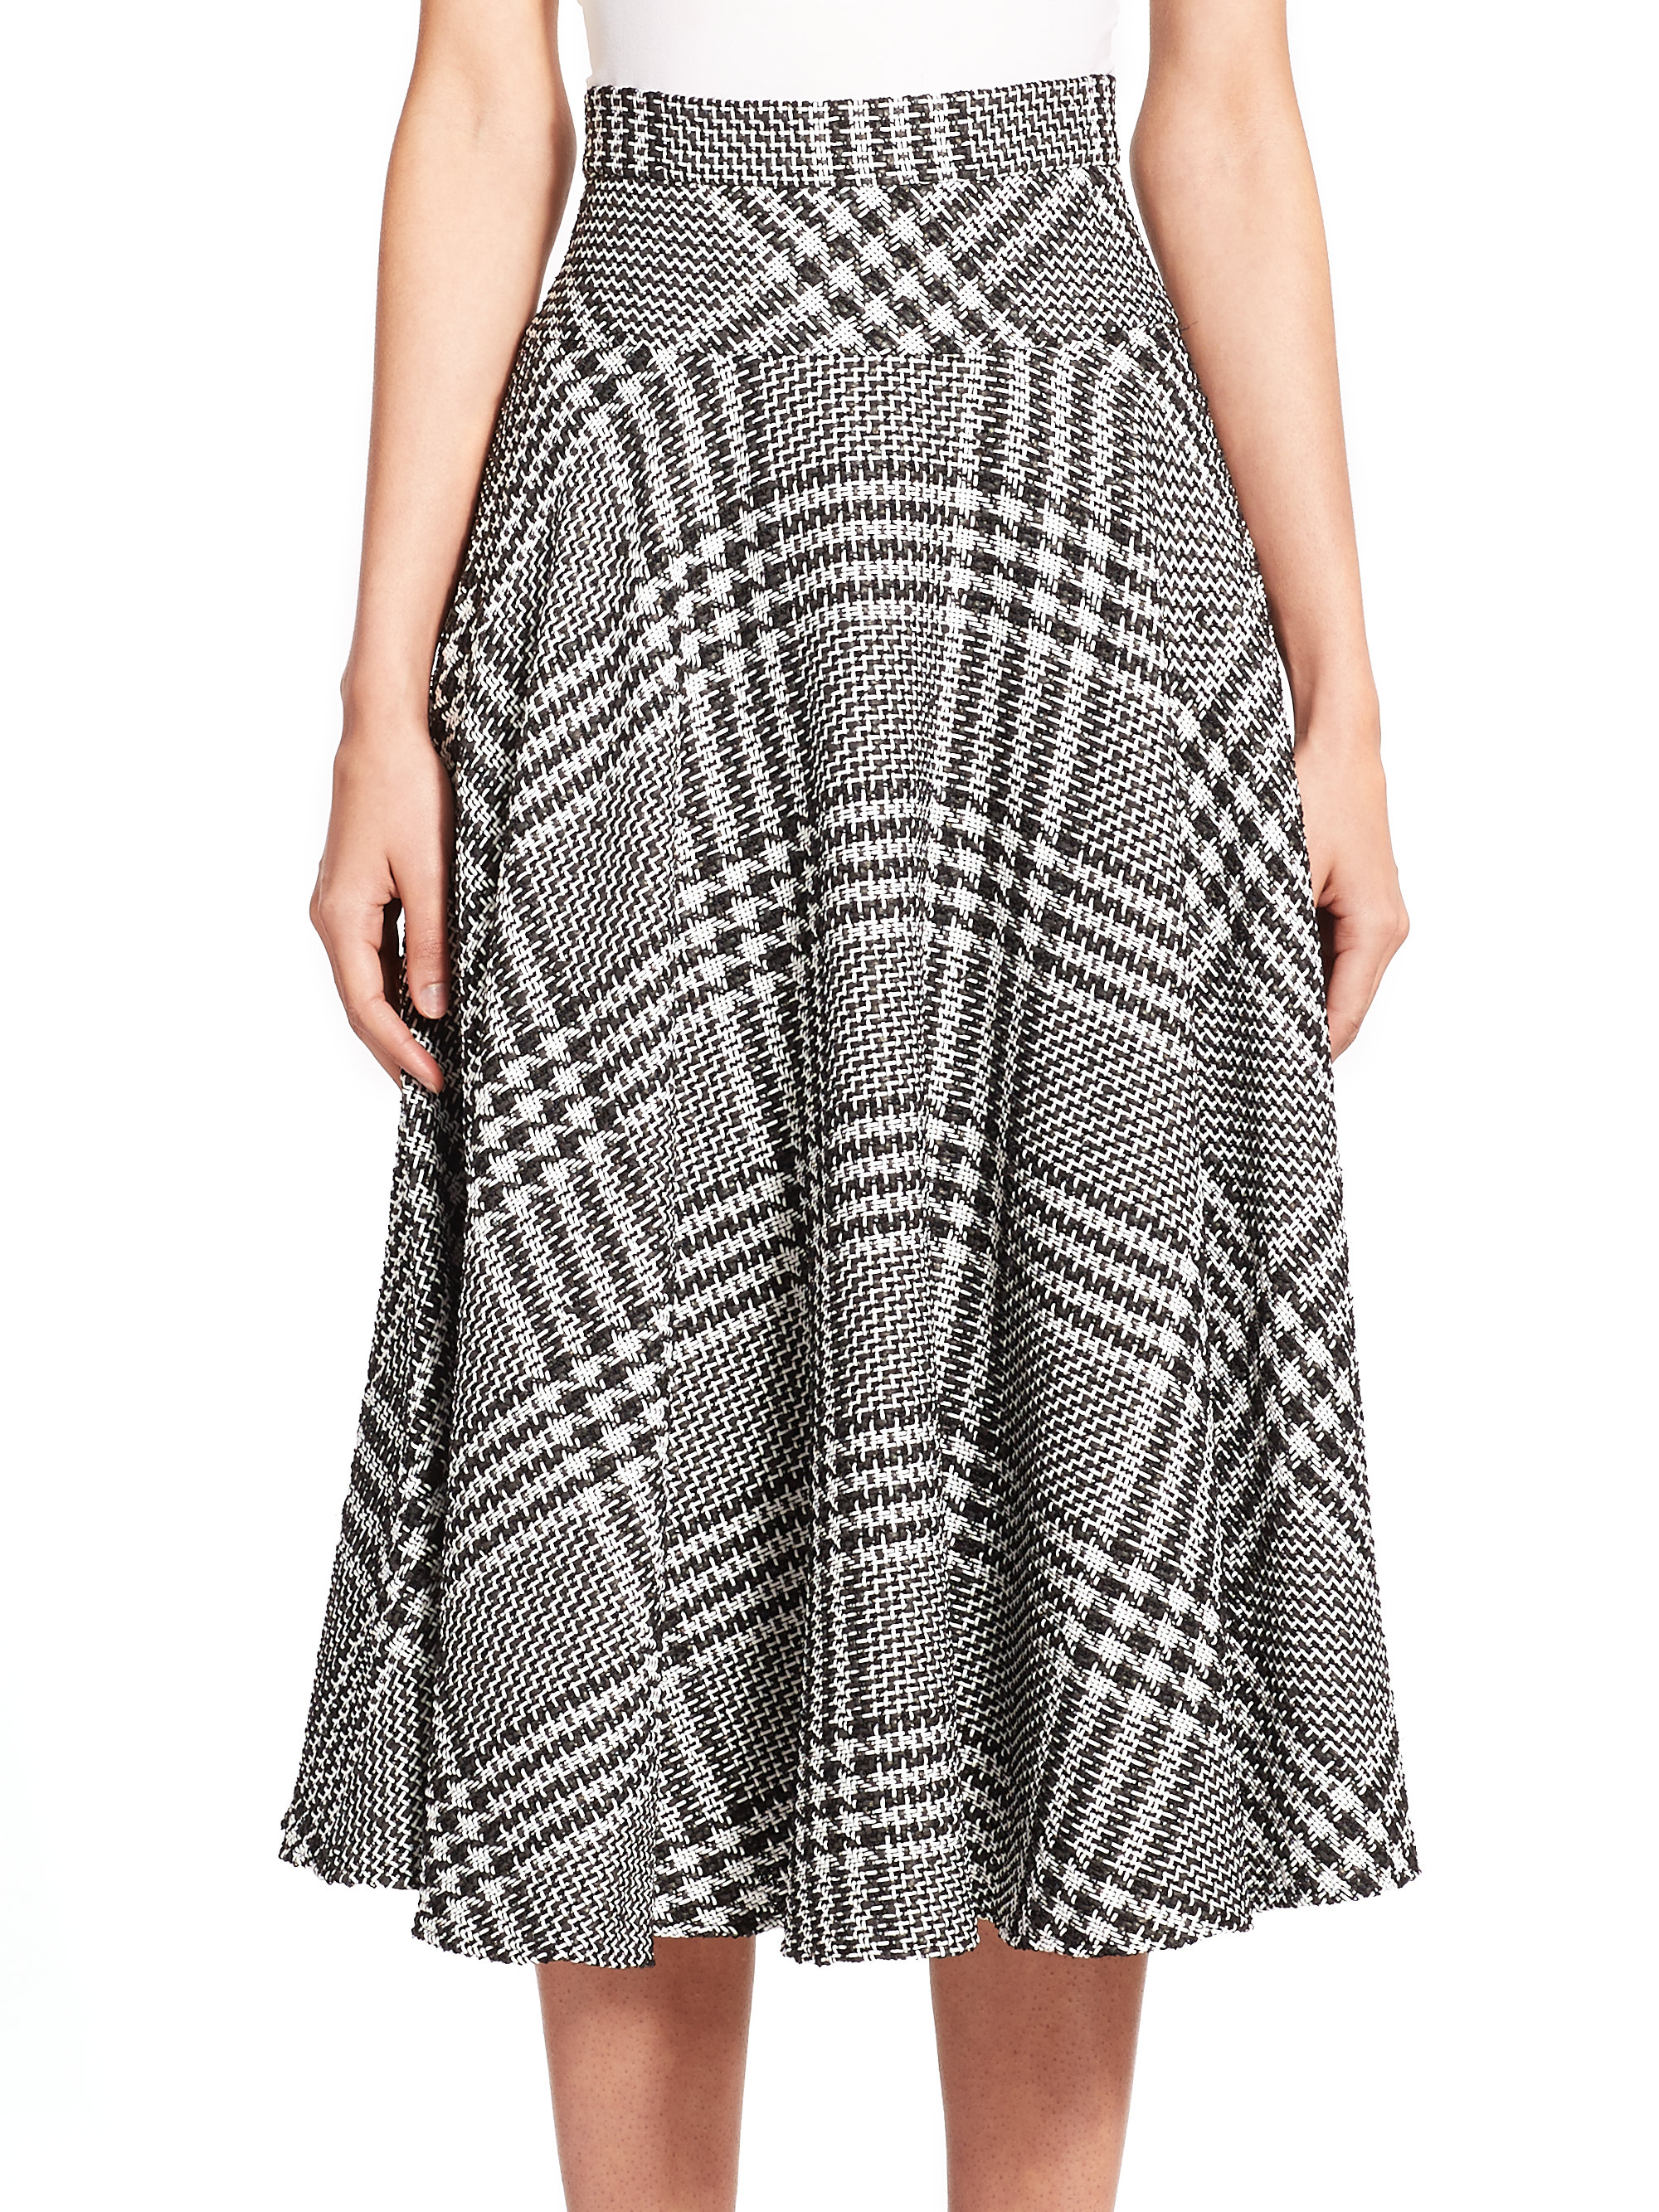 Escada Houndstooth Check Skirt in Black | Lyst